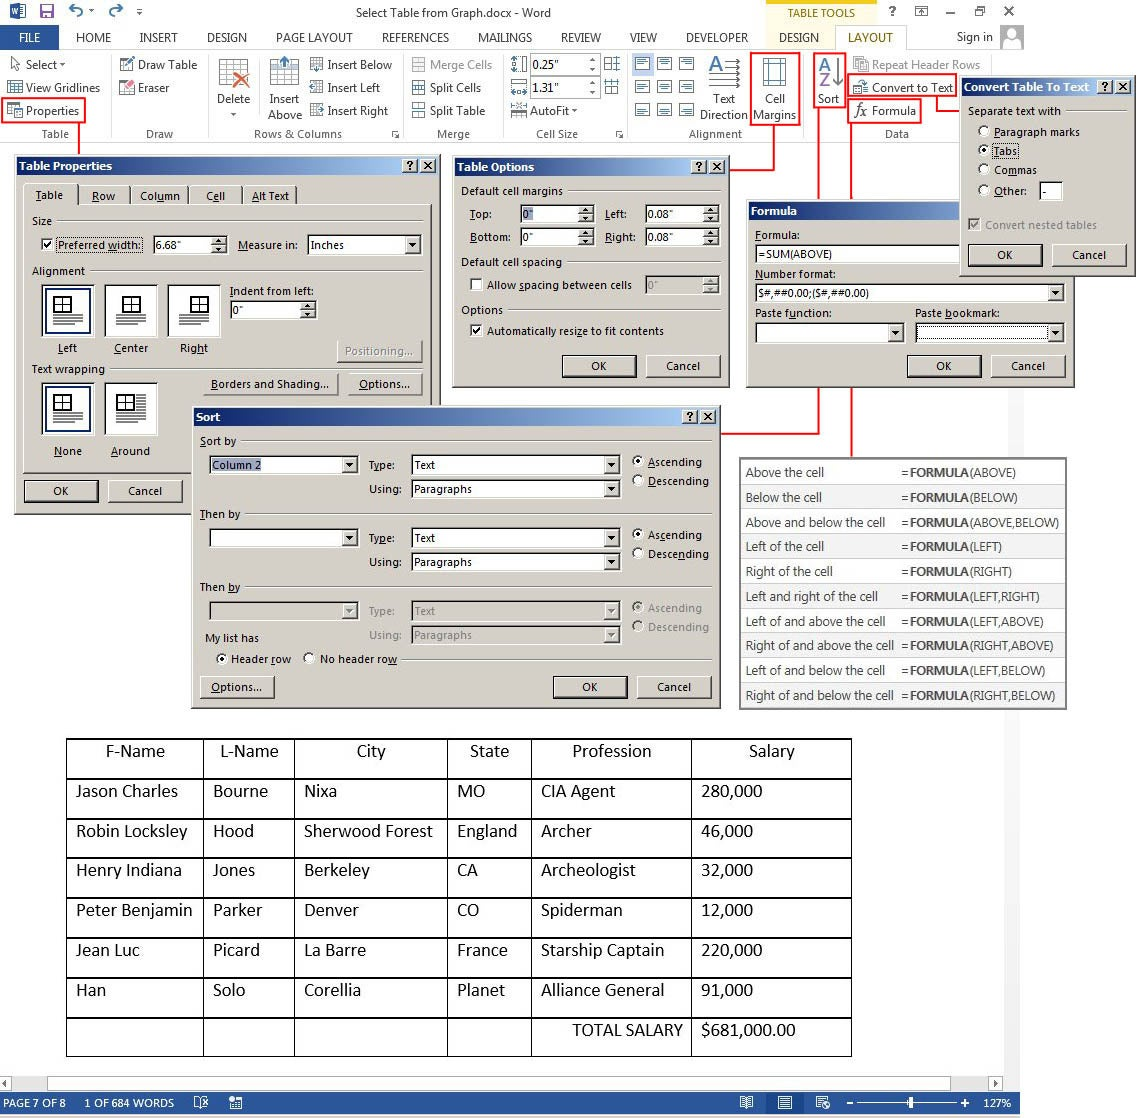 InfoTech: How to create and customize tables in Microsoft Word